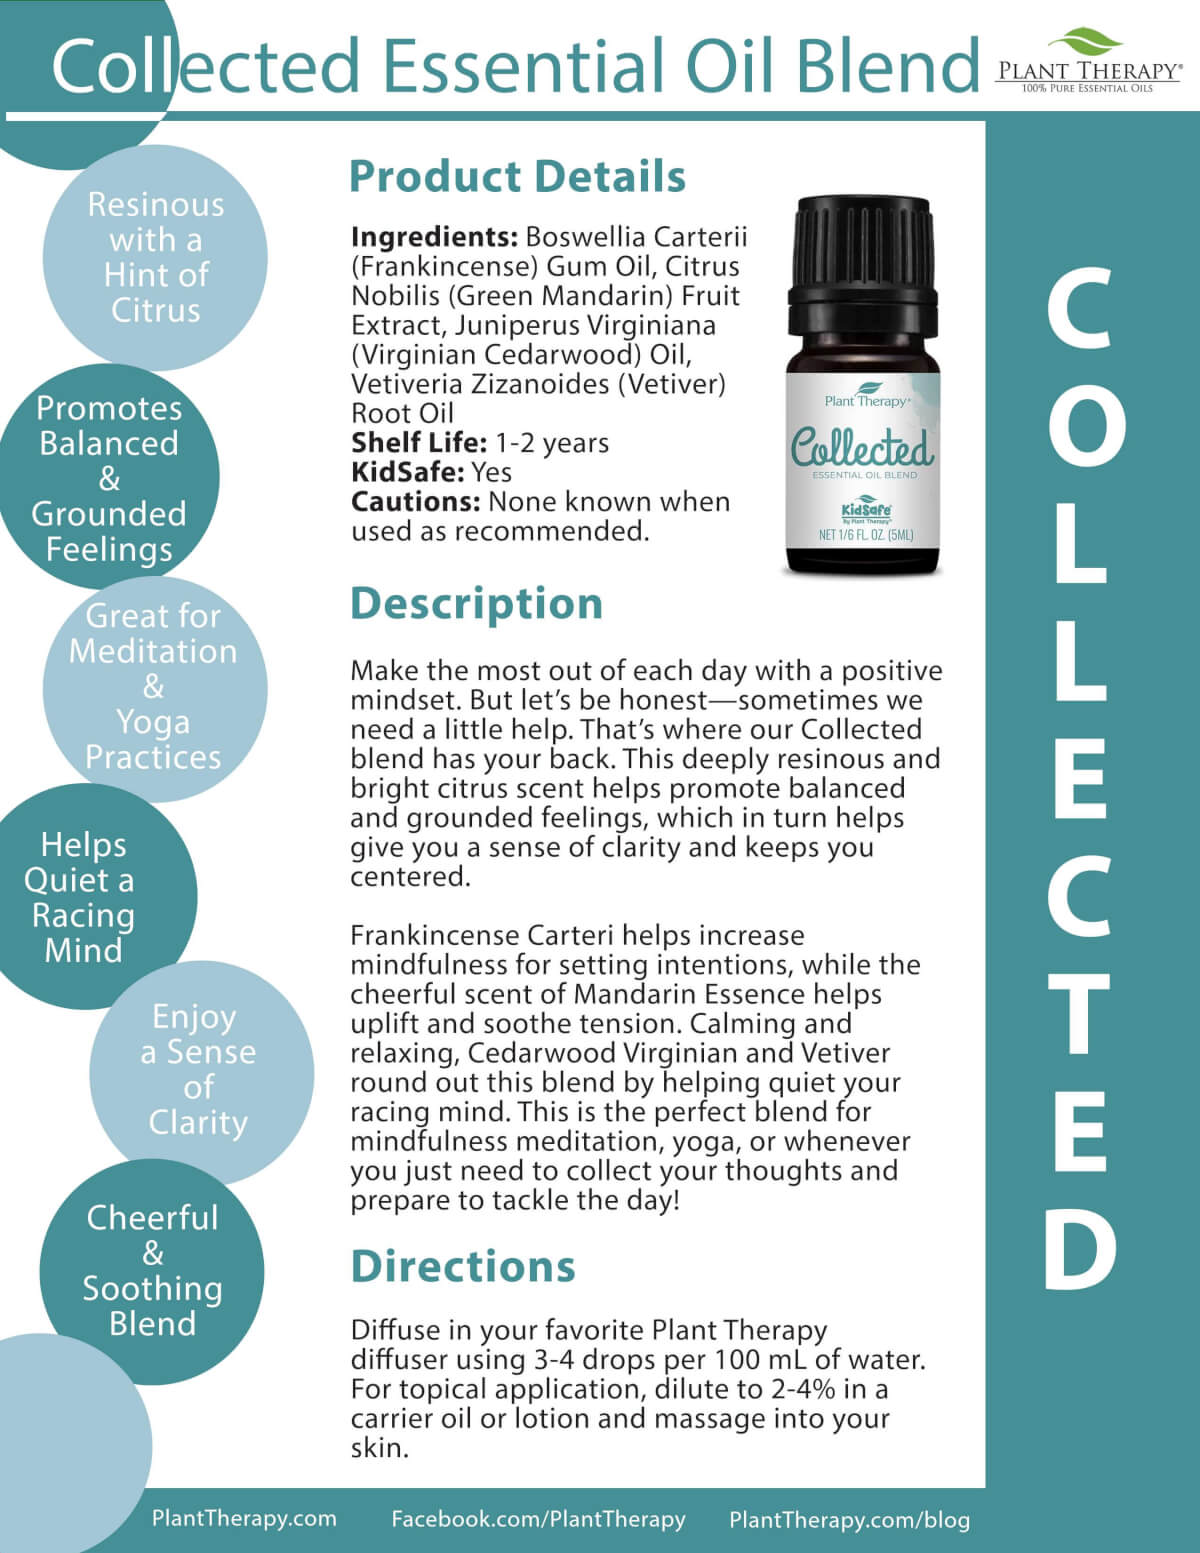 Collected Essential Oils Blends